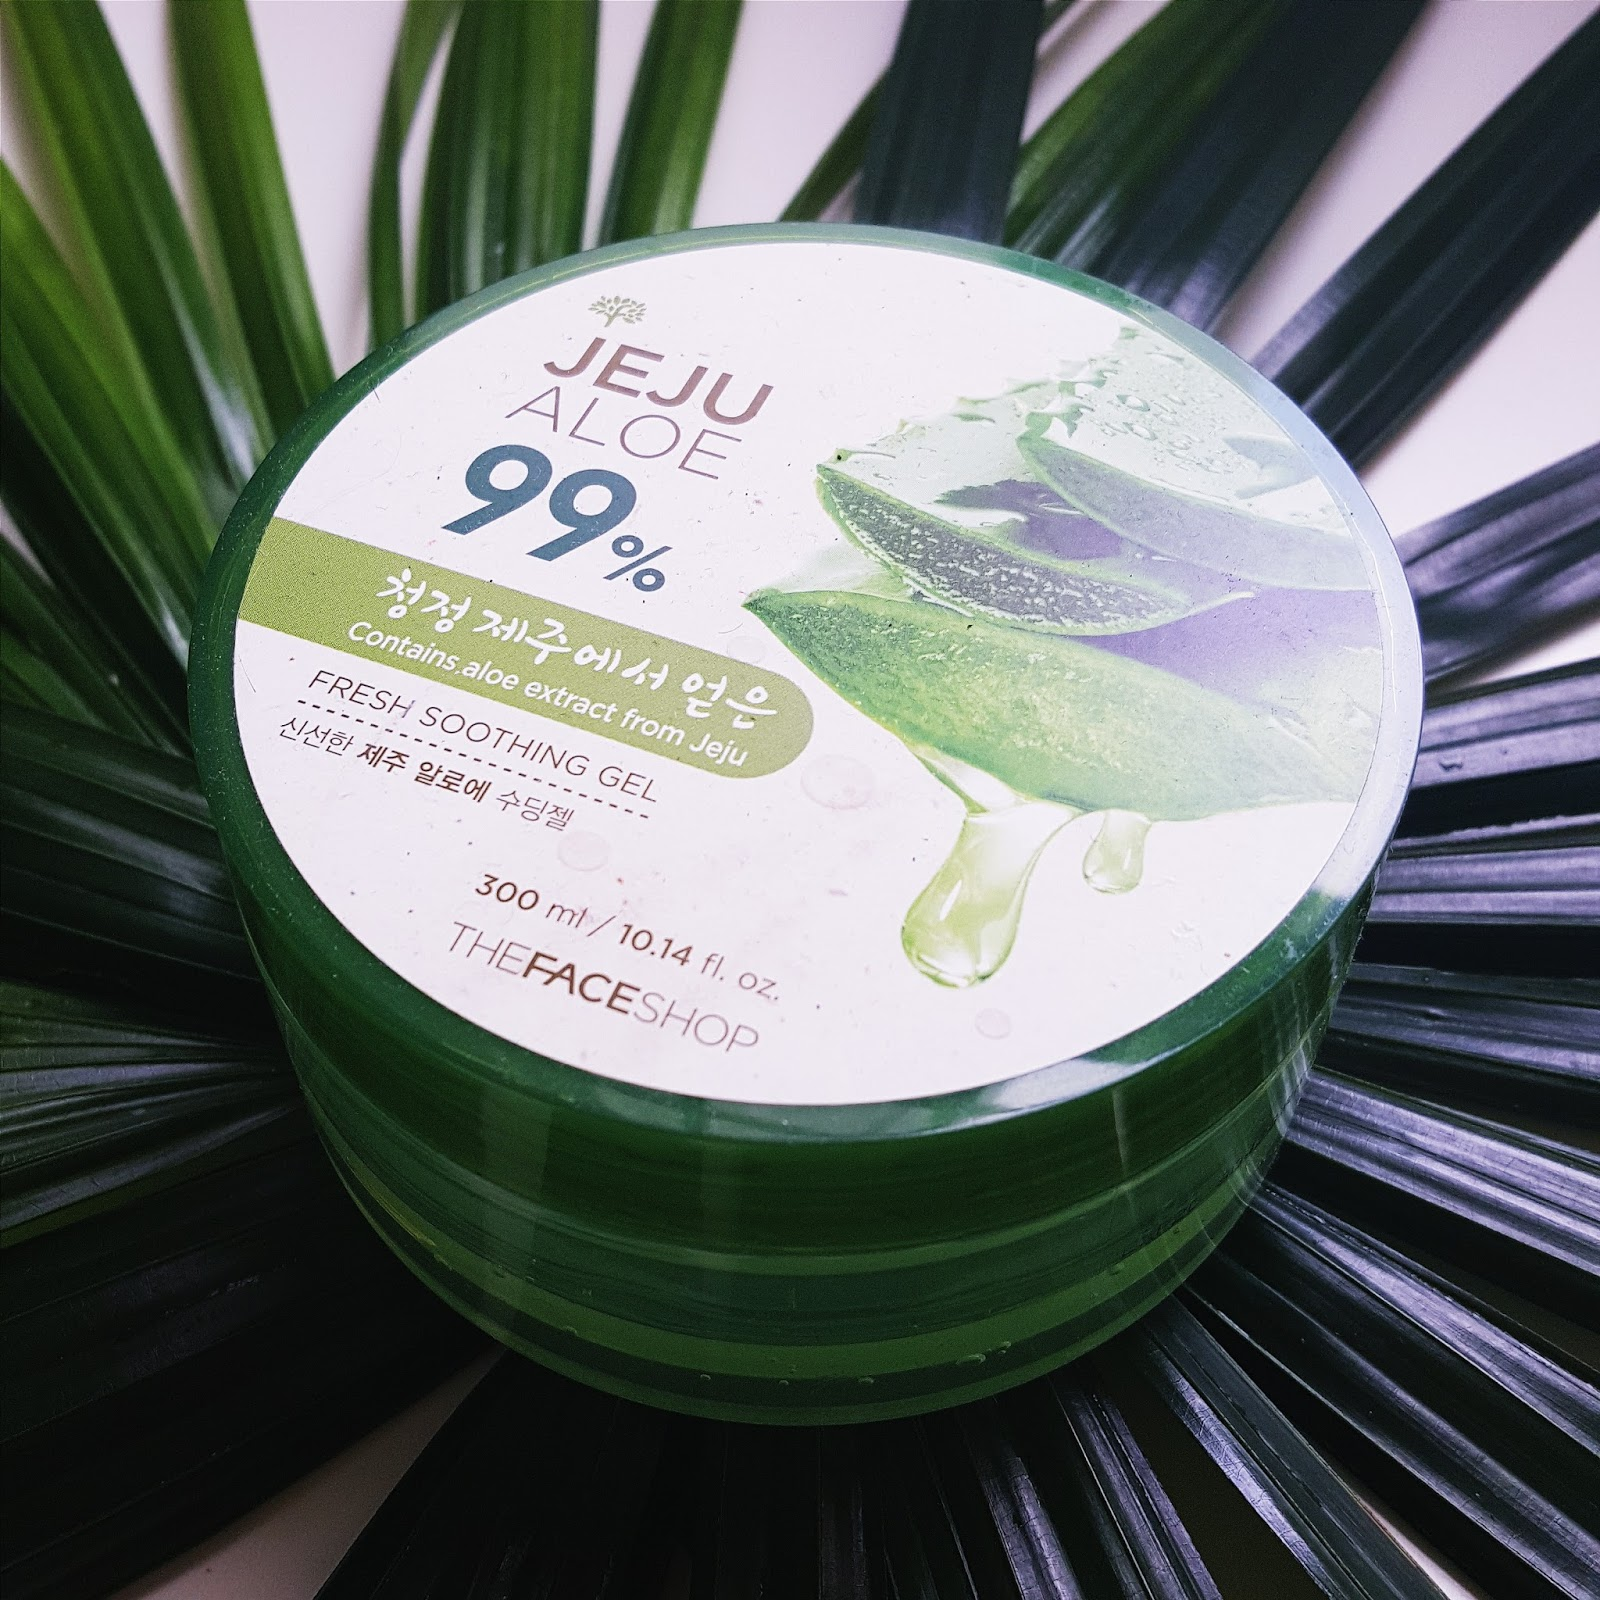 The Face Shop Jeju Aloe 99 Fresh Soothing Gel Review Fishmeatdie K Beauty Vera Shooting Nature There Are A Few New Ones That I Saw Came In Tube Form Tub To Me Just Seems Bit Unhygenic Right Now But For Much Amount Of